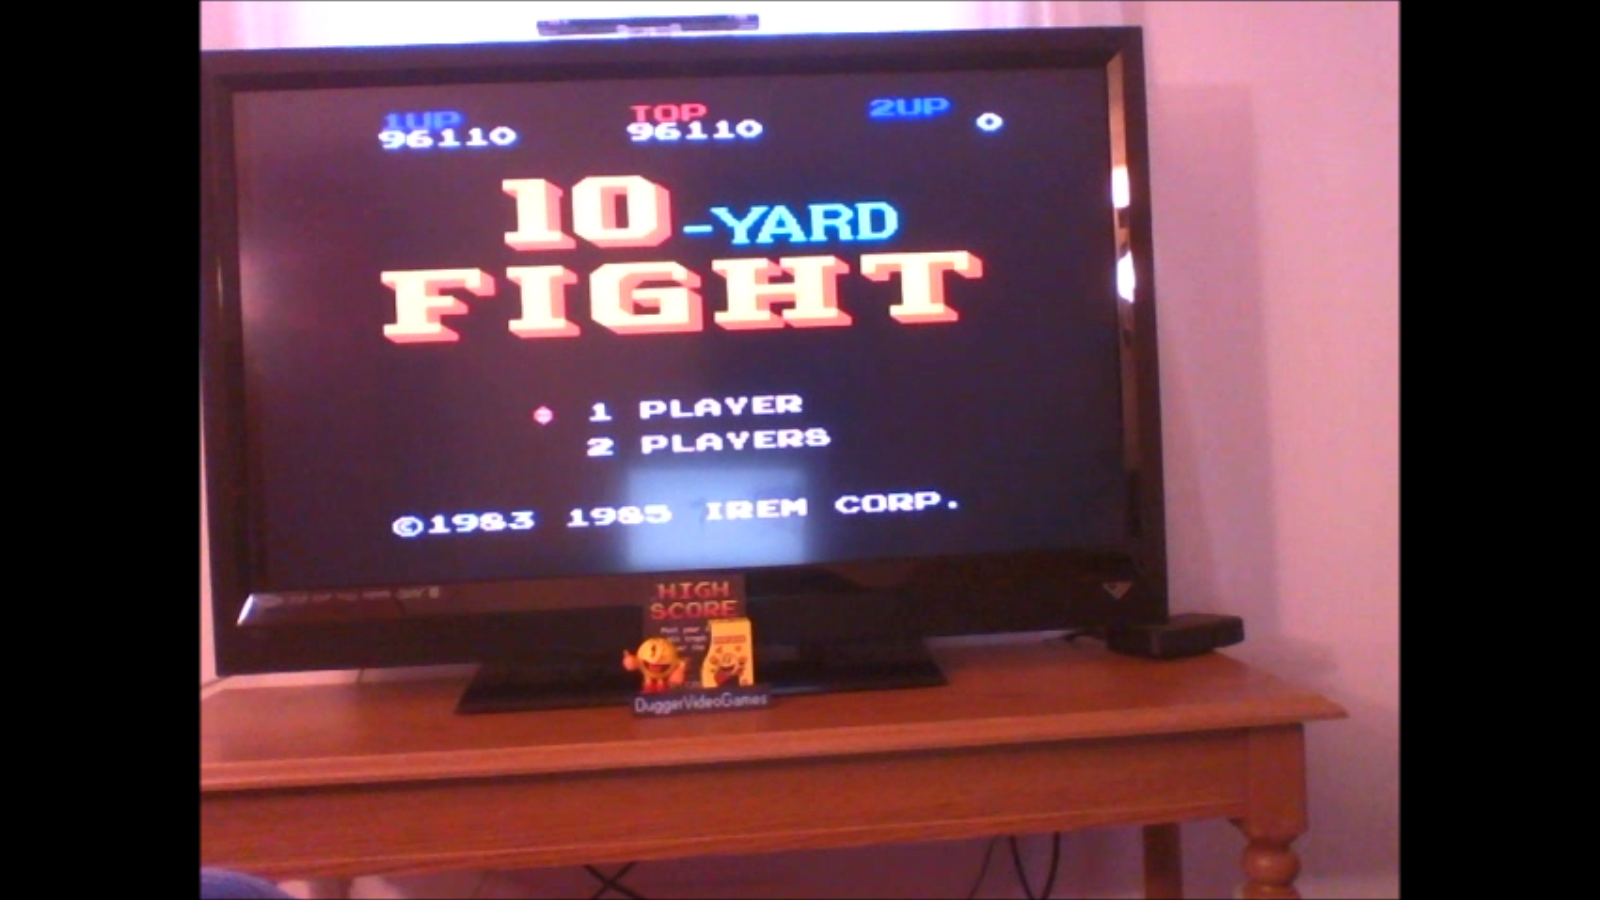 DuggerVideoGames: 10 Yard Fight (NES/Famicom Emulated) 96,110 points on 2017-01-23 07:35:32